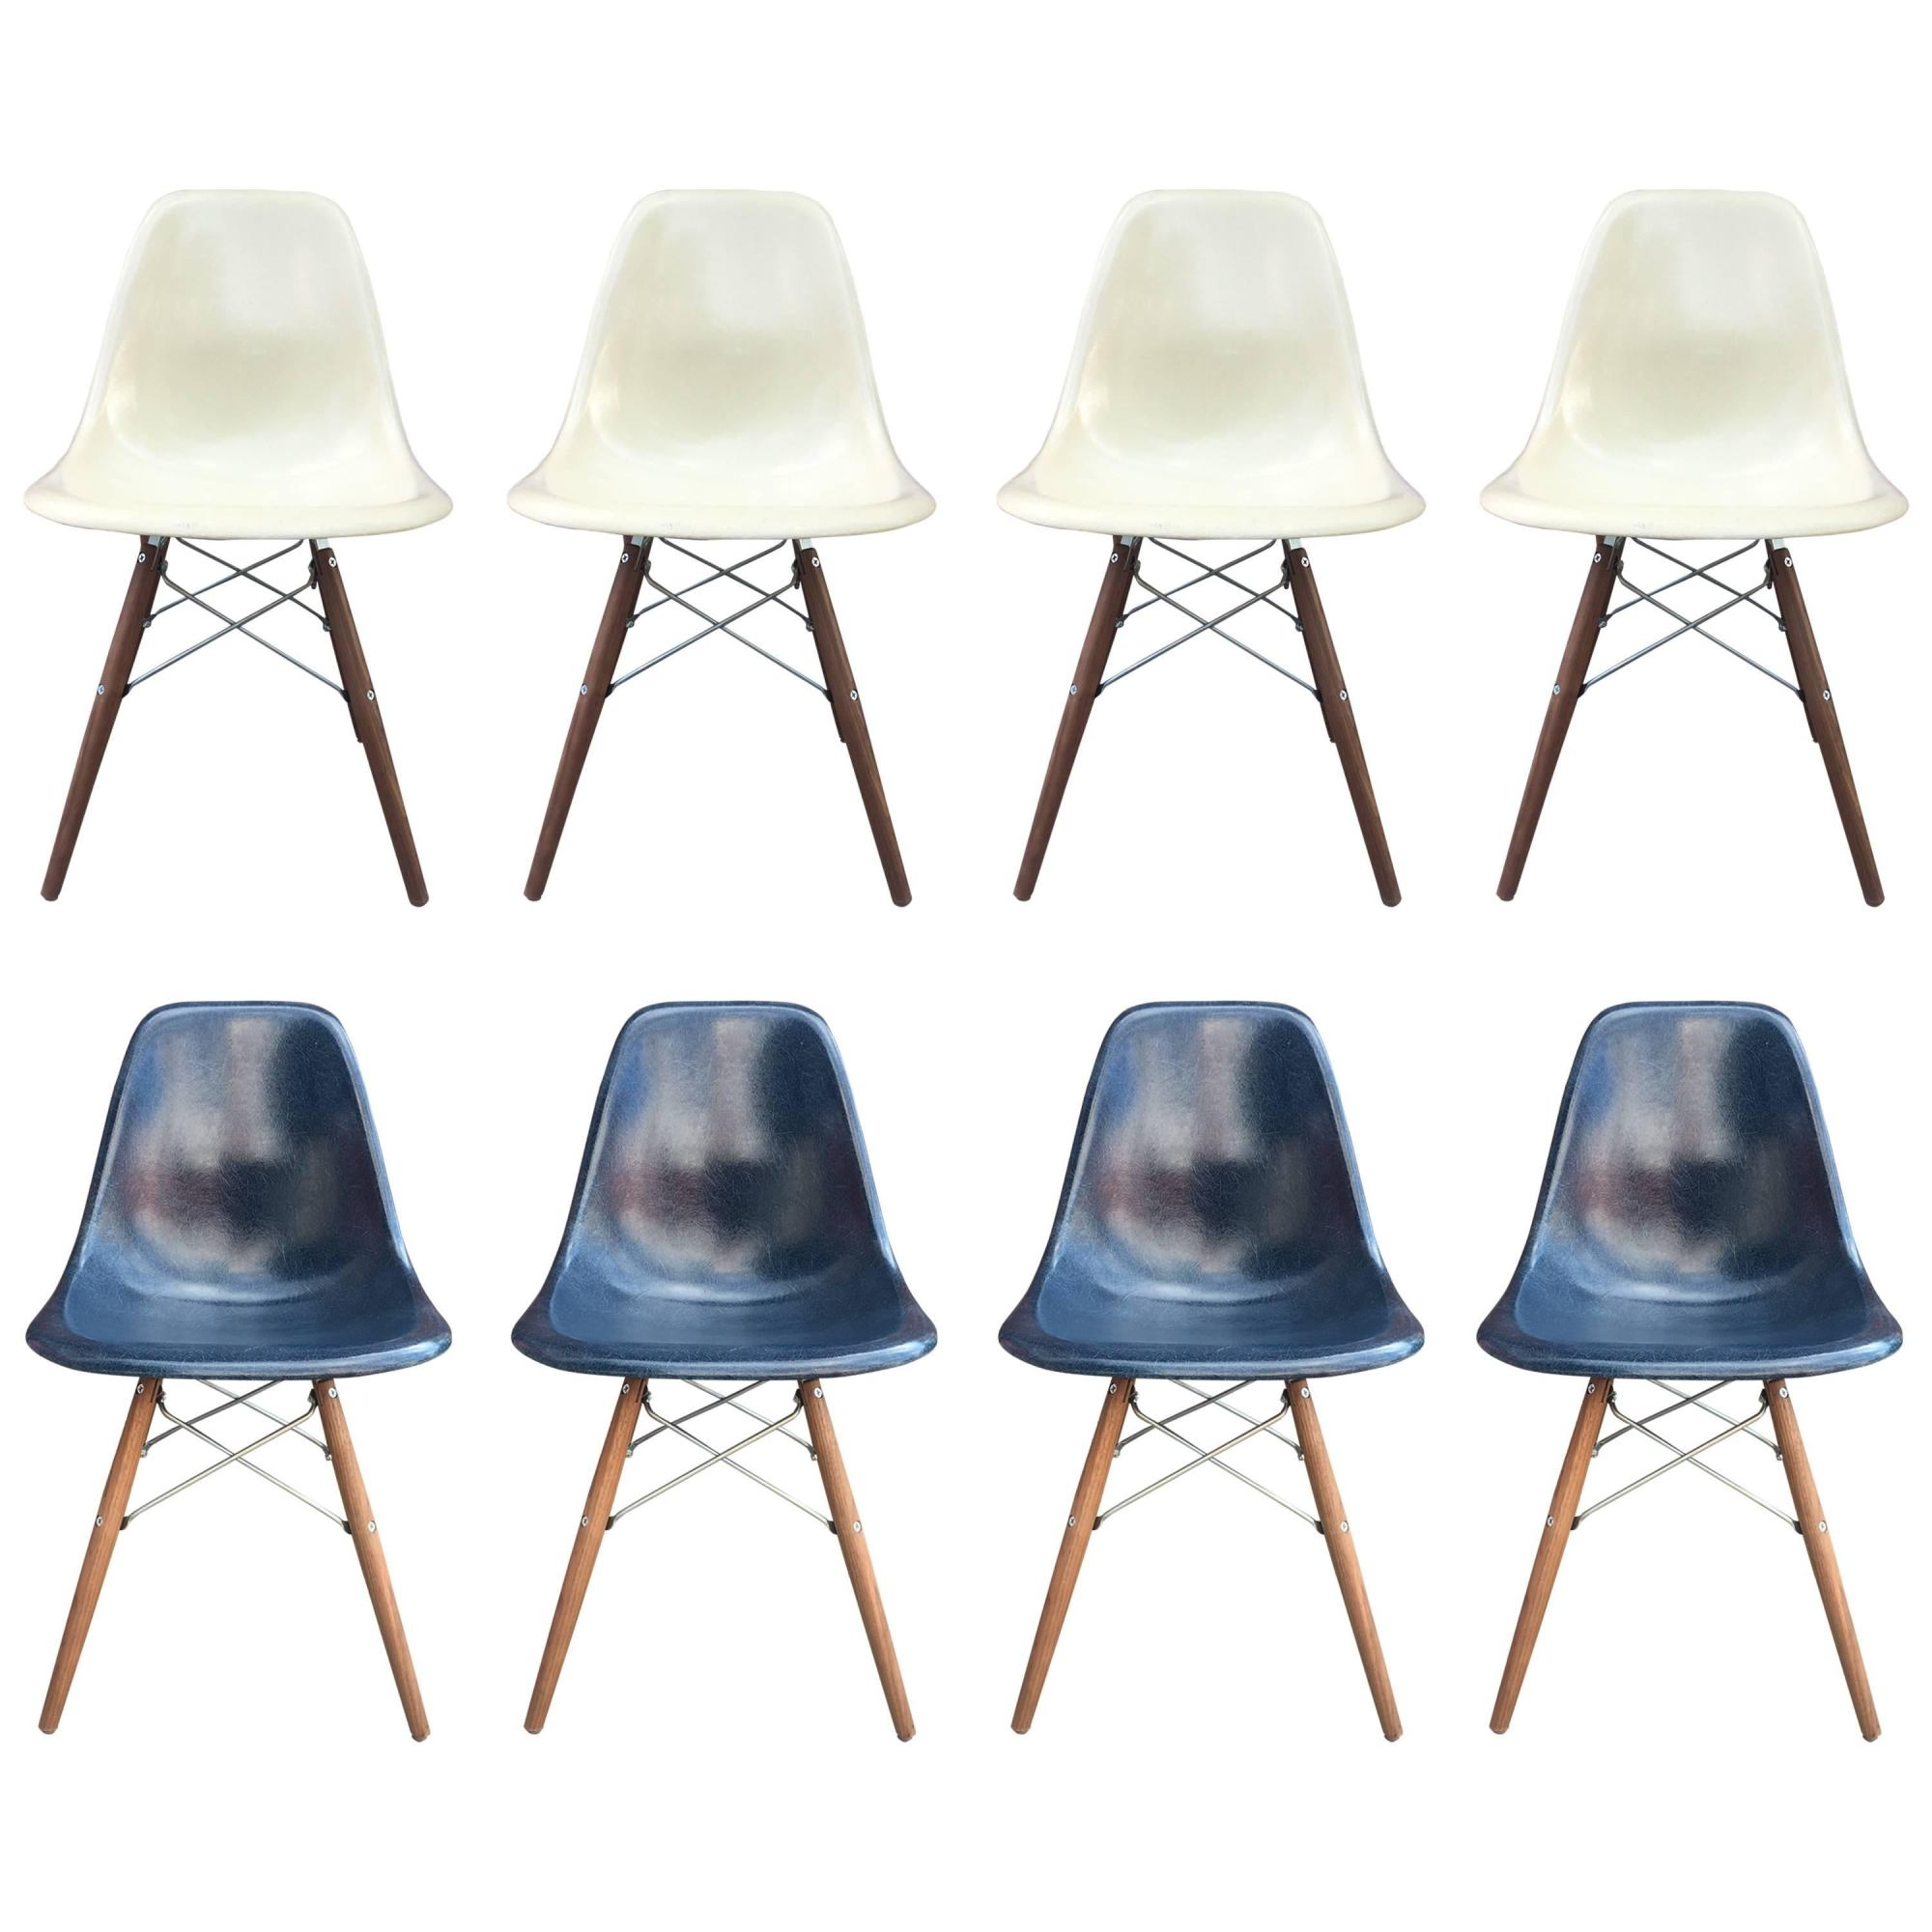 hight resolution of eight herman miller eames dining chairs in navy and parchment for sale at 1stdibs